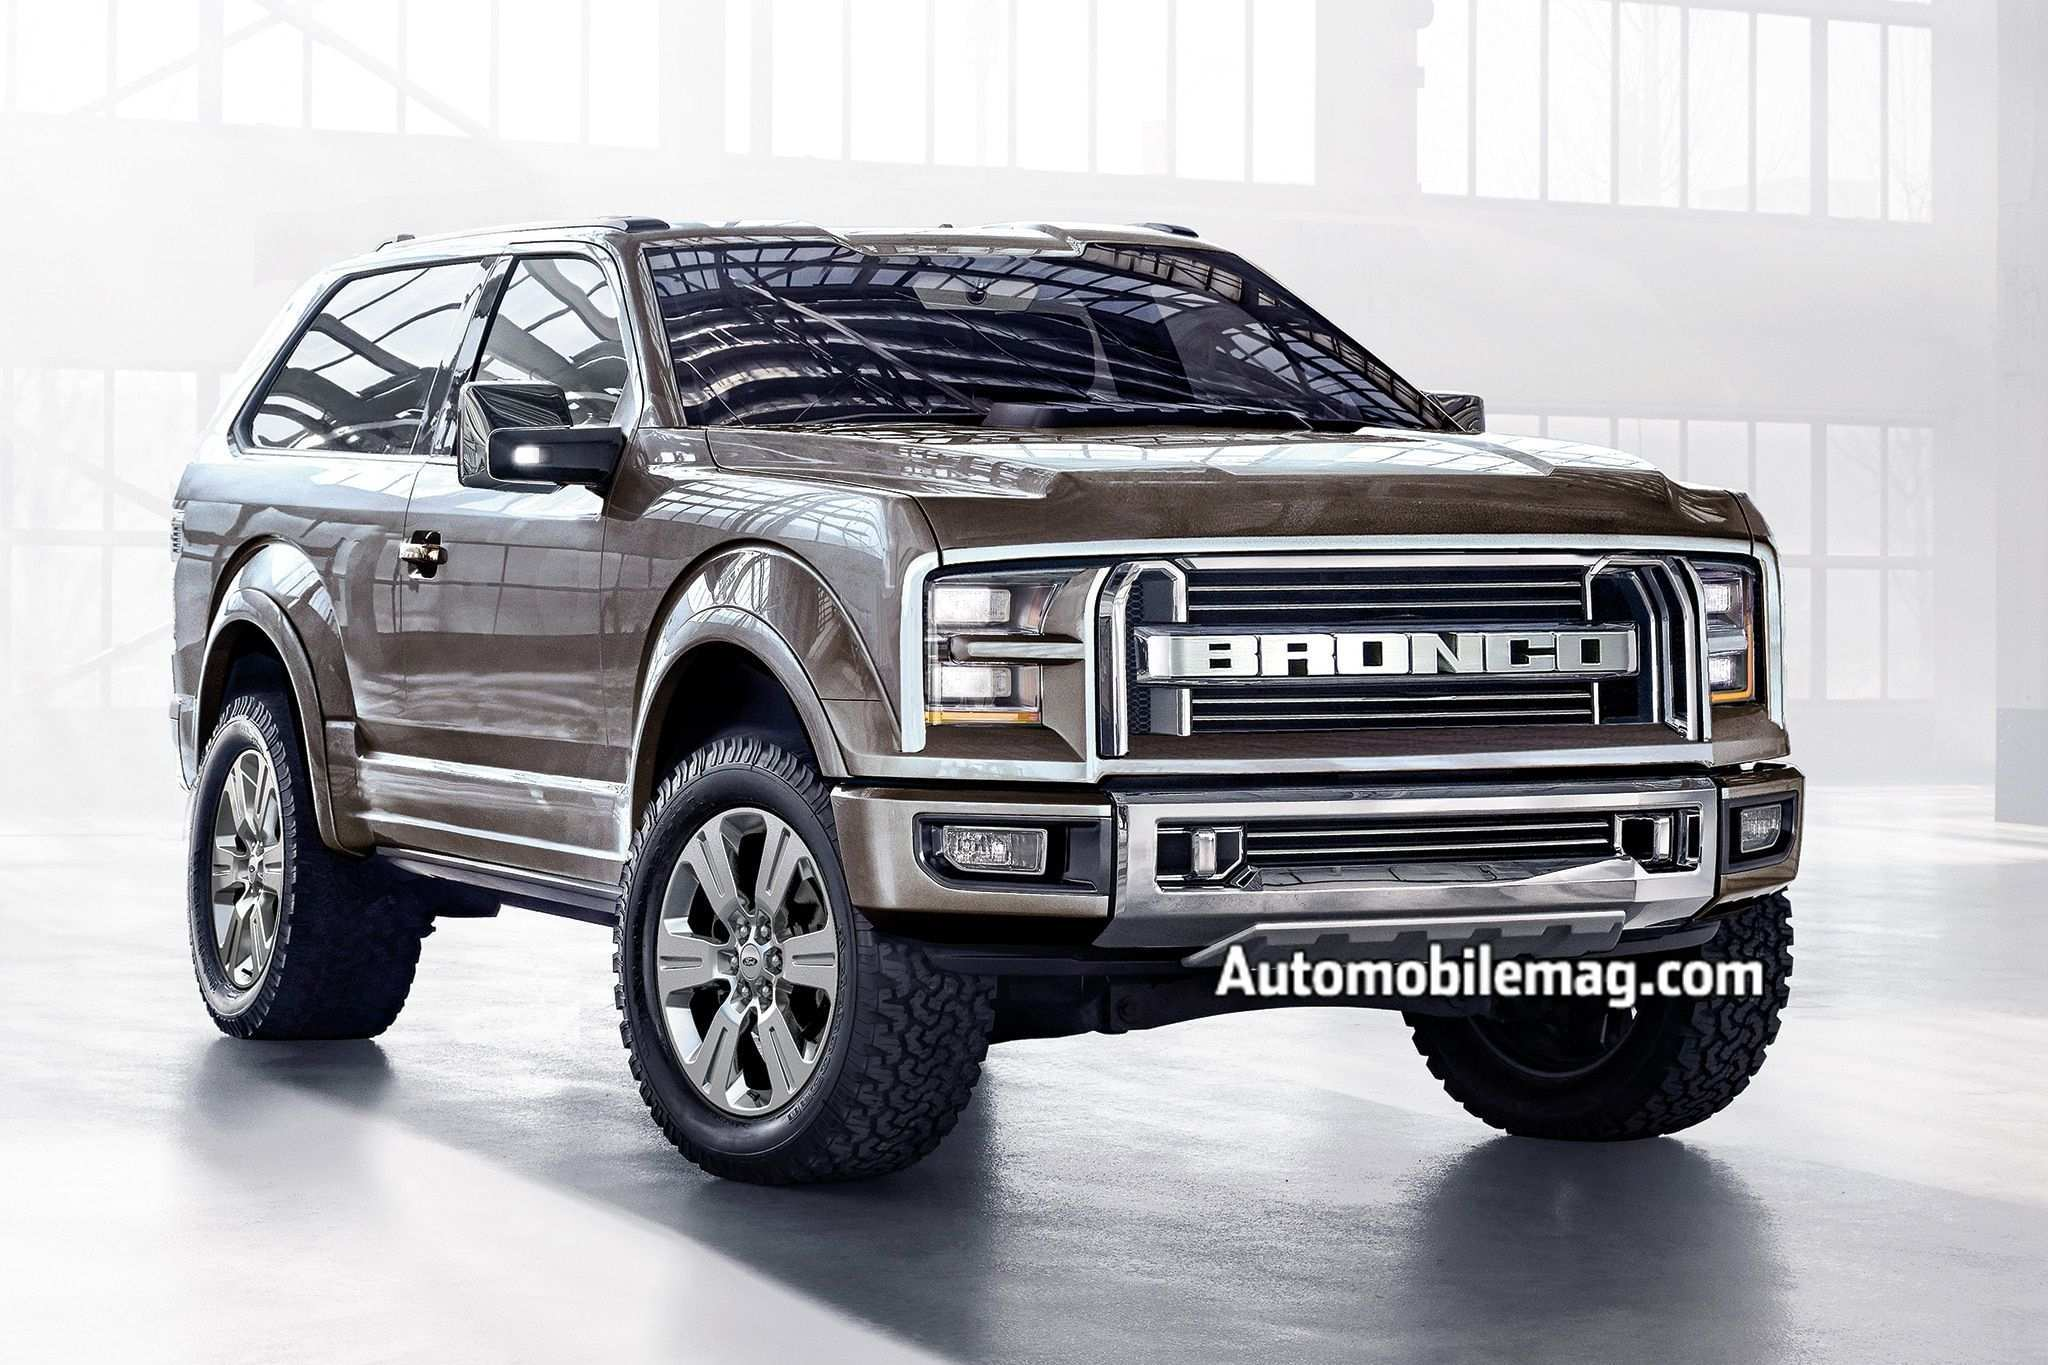 94 New 2019 Ford Bronco 4 Door Pricing by 2019 Ford Bronco 4 Door